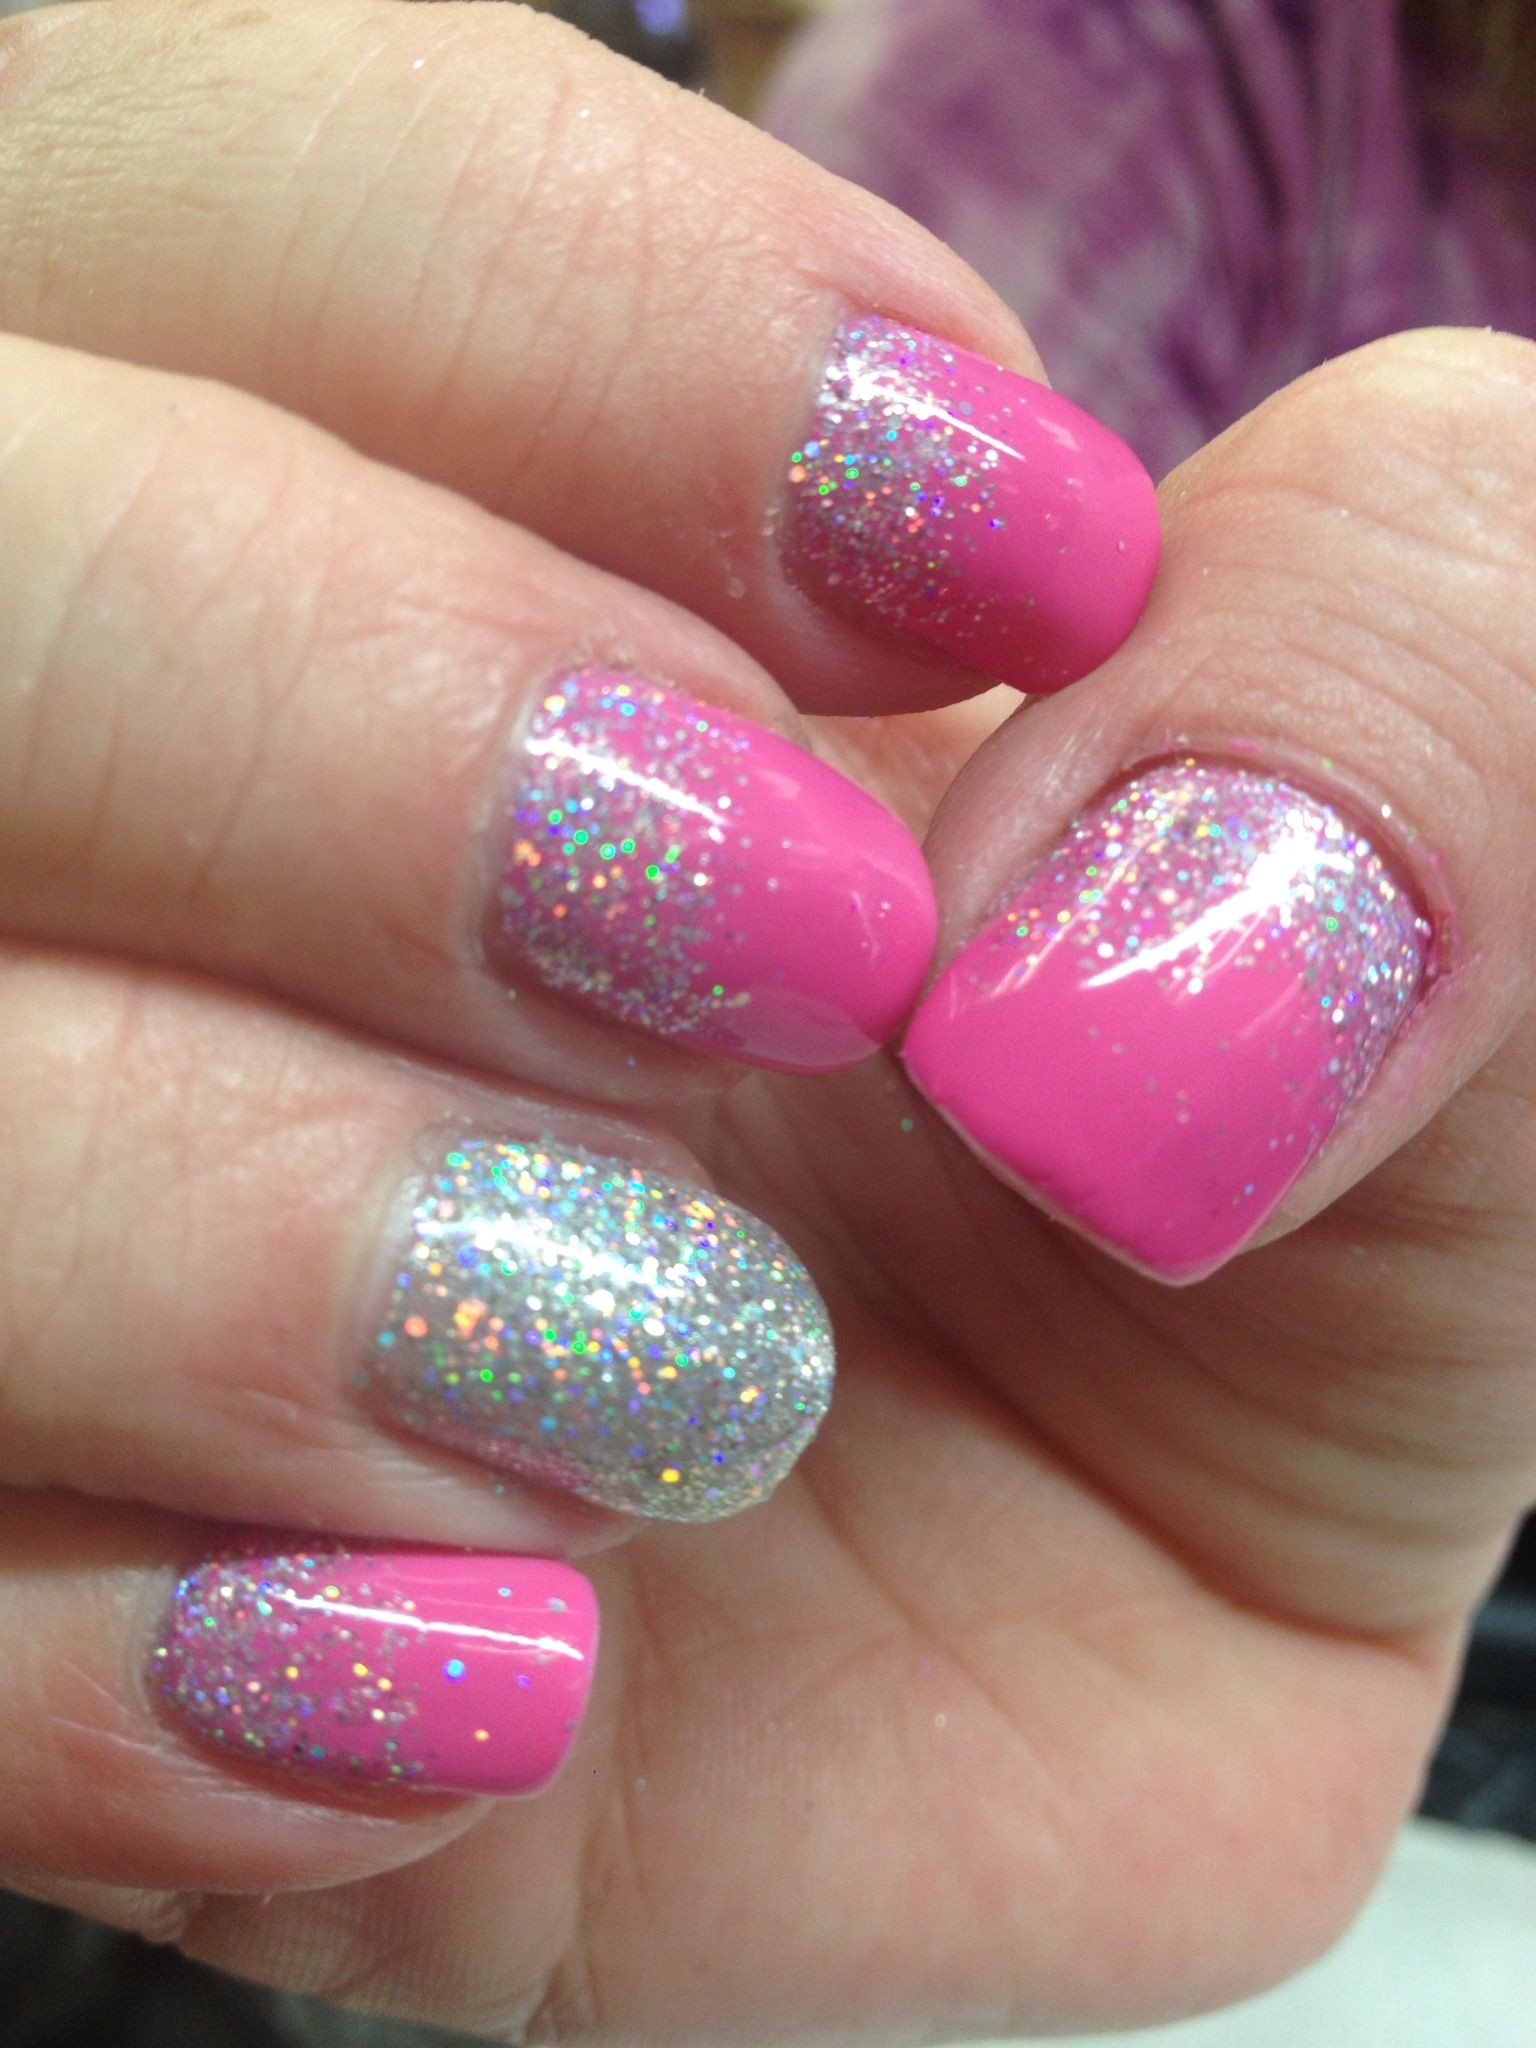 Pink Shellac Nail Designs  CND Shellac pink glitter reverse French